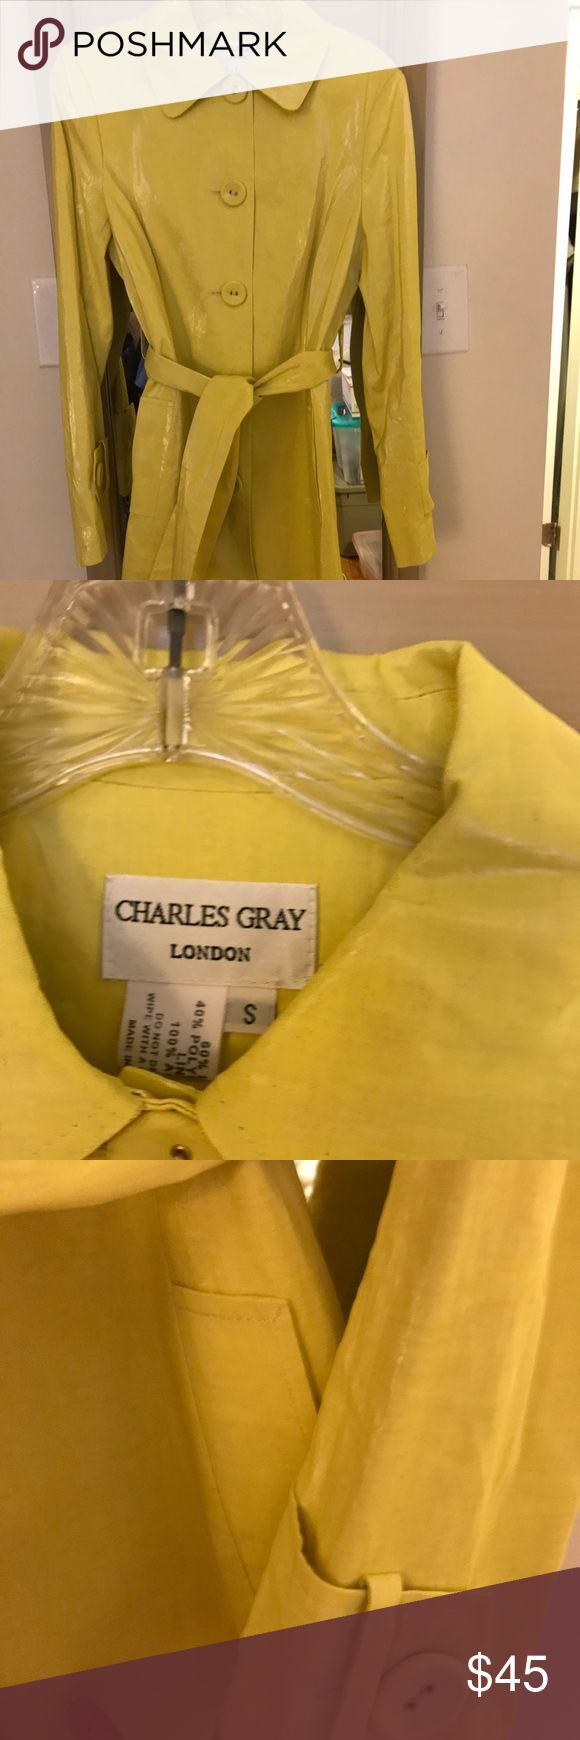 Raincoat Charles Gray.  London Polyurethane lining  Linen treated with beautiful waterproofing sheen  Side belt loops Front button Photos don't do this adorable coat justice!! It is in excellent condition. Barely worn. Charles Gray Jackets & Coats Utility Jackets